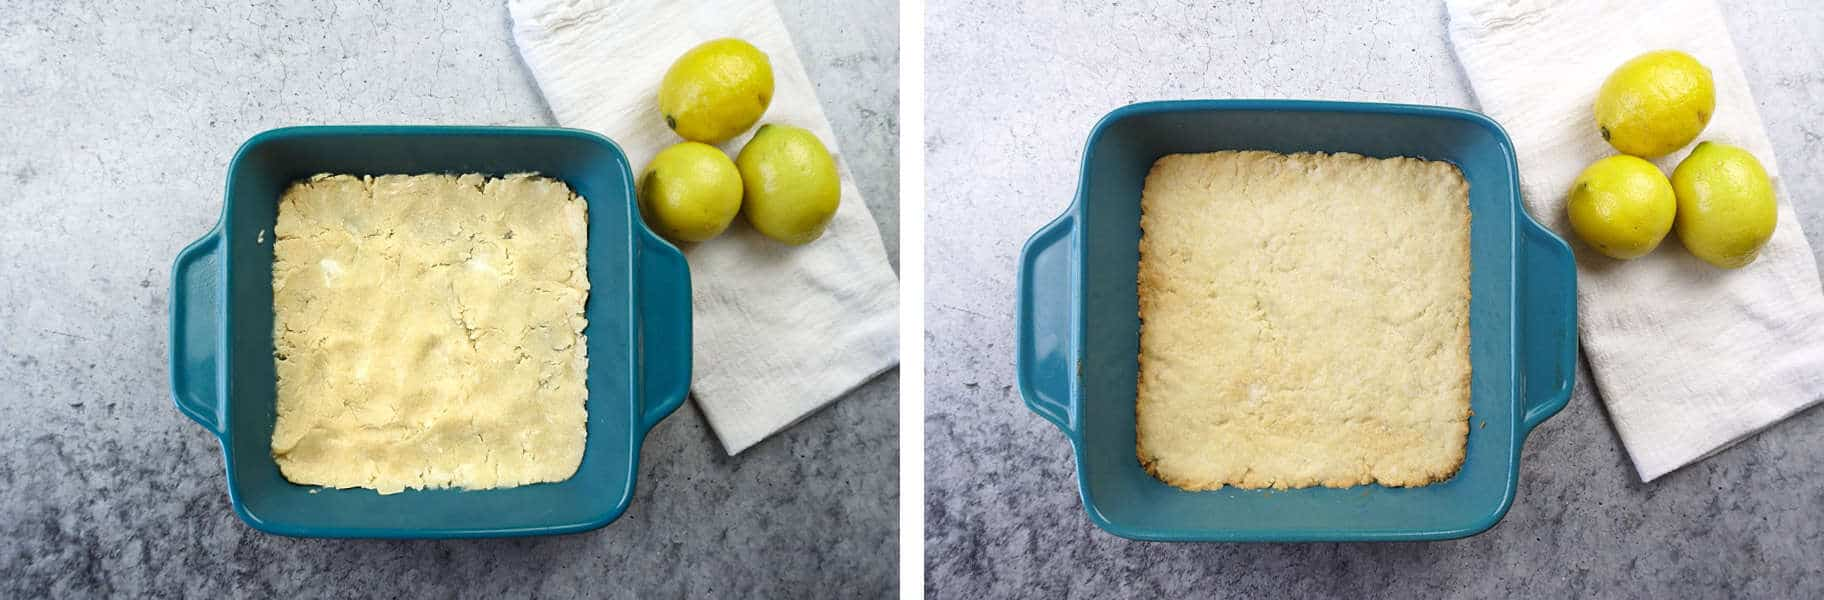 Lemon Bars Crust unbaked and baked side by side